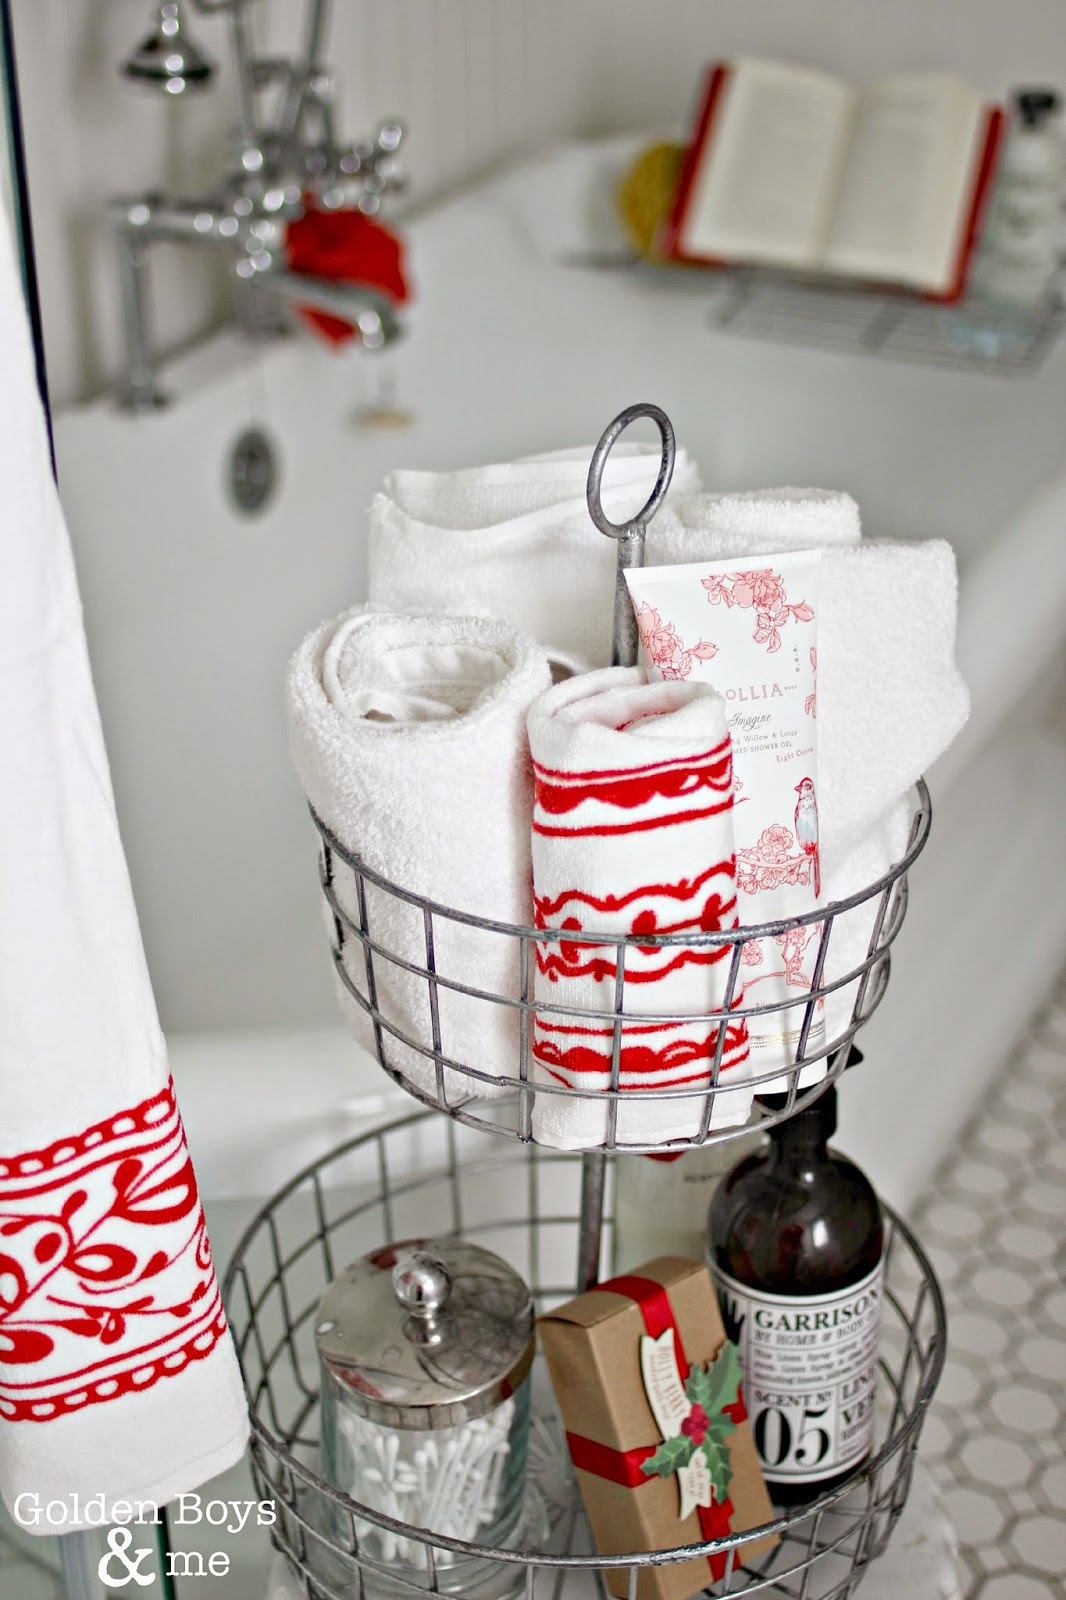 How Cute Are These Mr. U0026 Mrs. Claus Towels I Found At TJ Maxx?!?